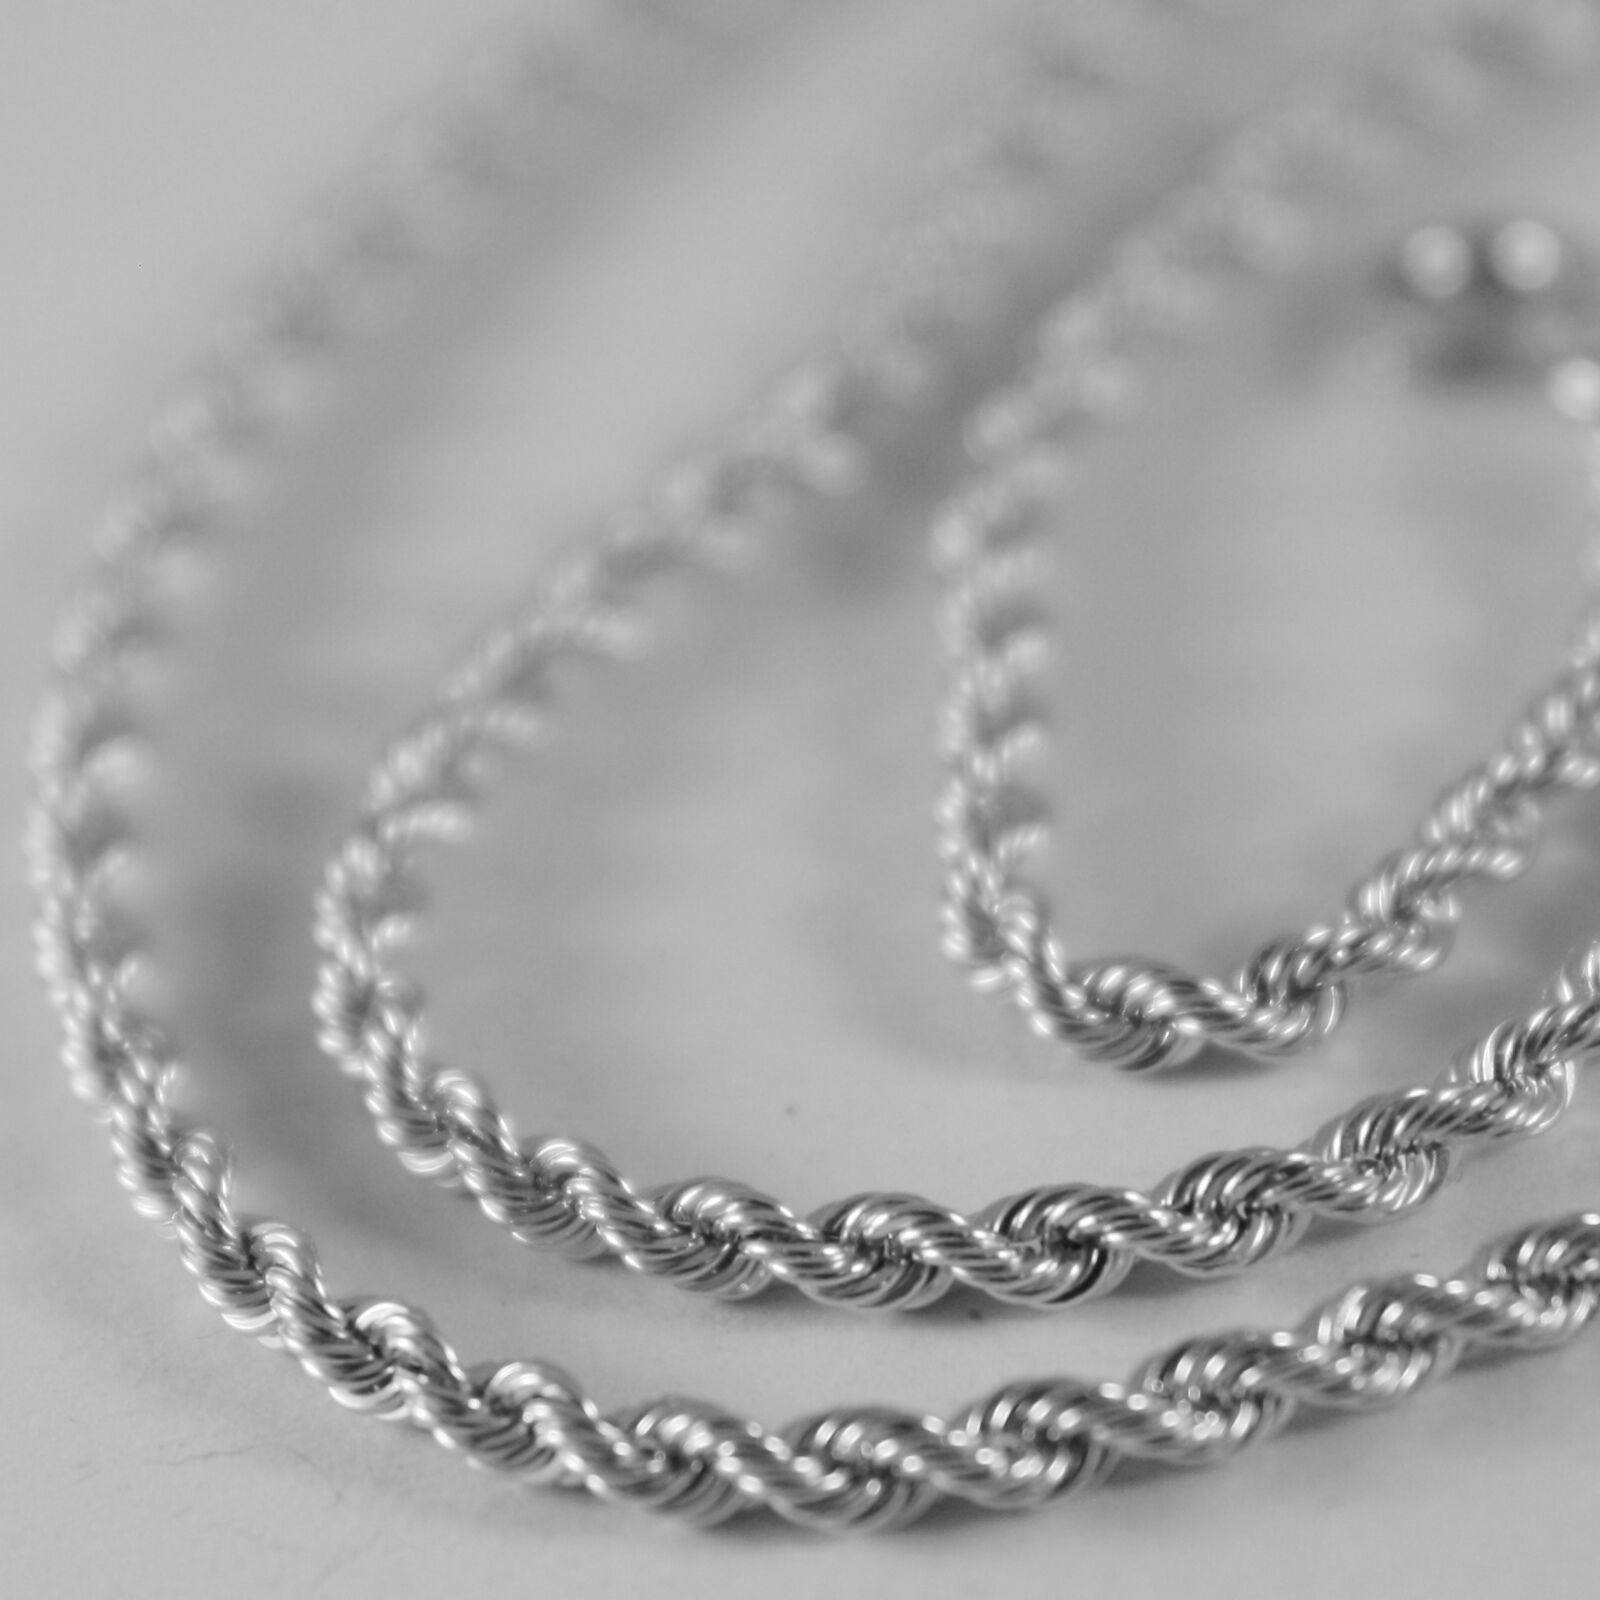 18K WHITE GOLD CHAIN NECKLACE, BRAID ROPE LINK 19.69 INCHES 2.5 MM MADE IN ITALY